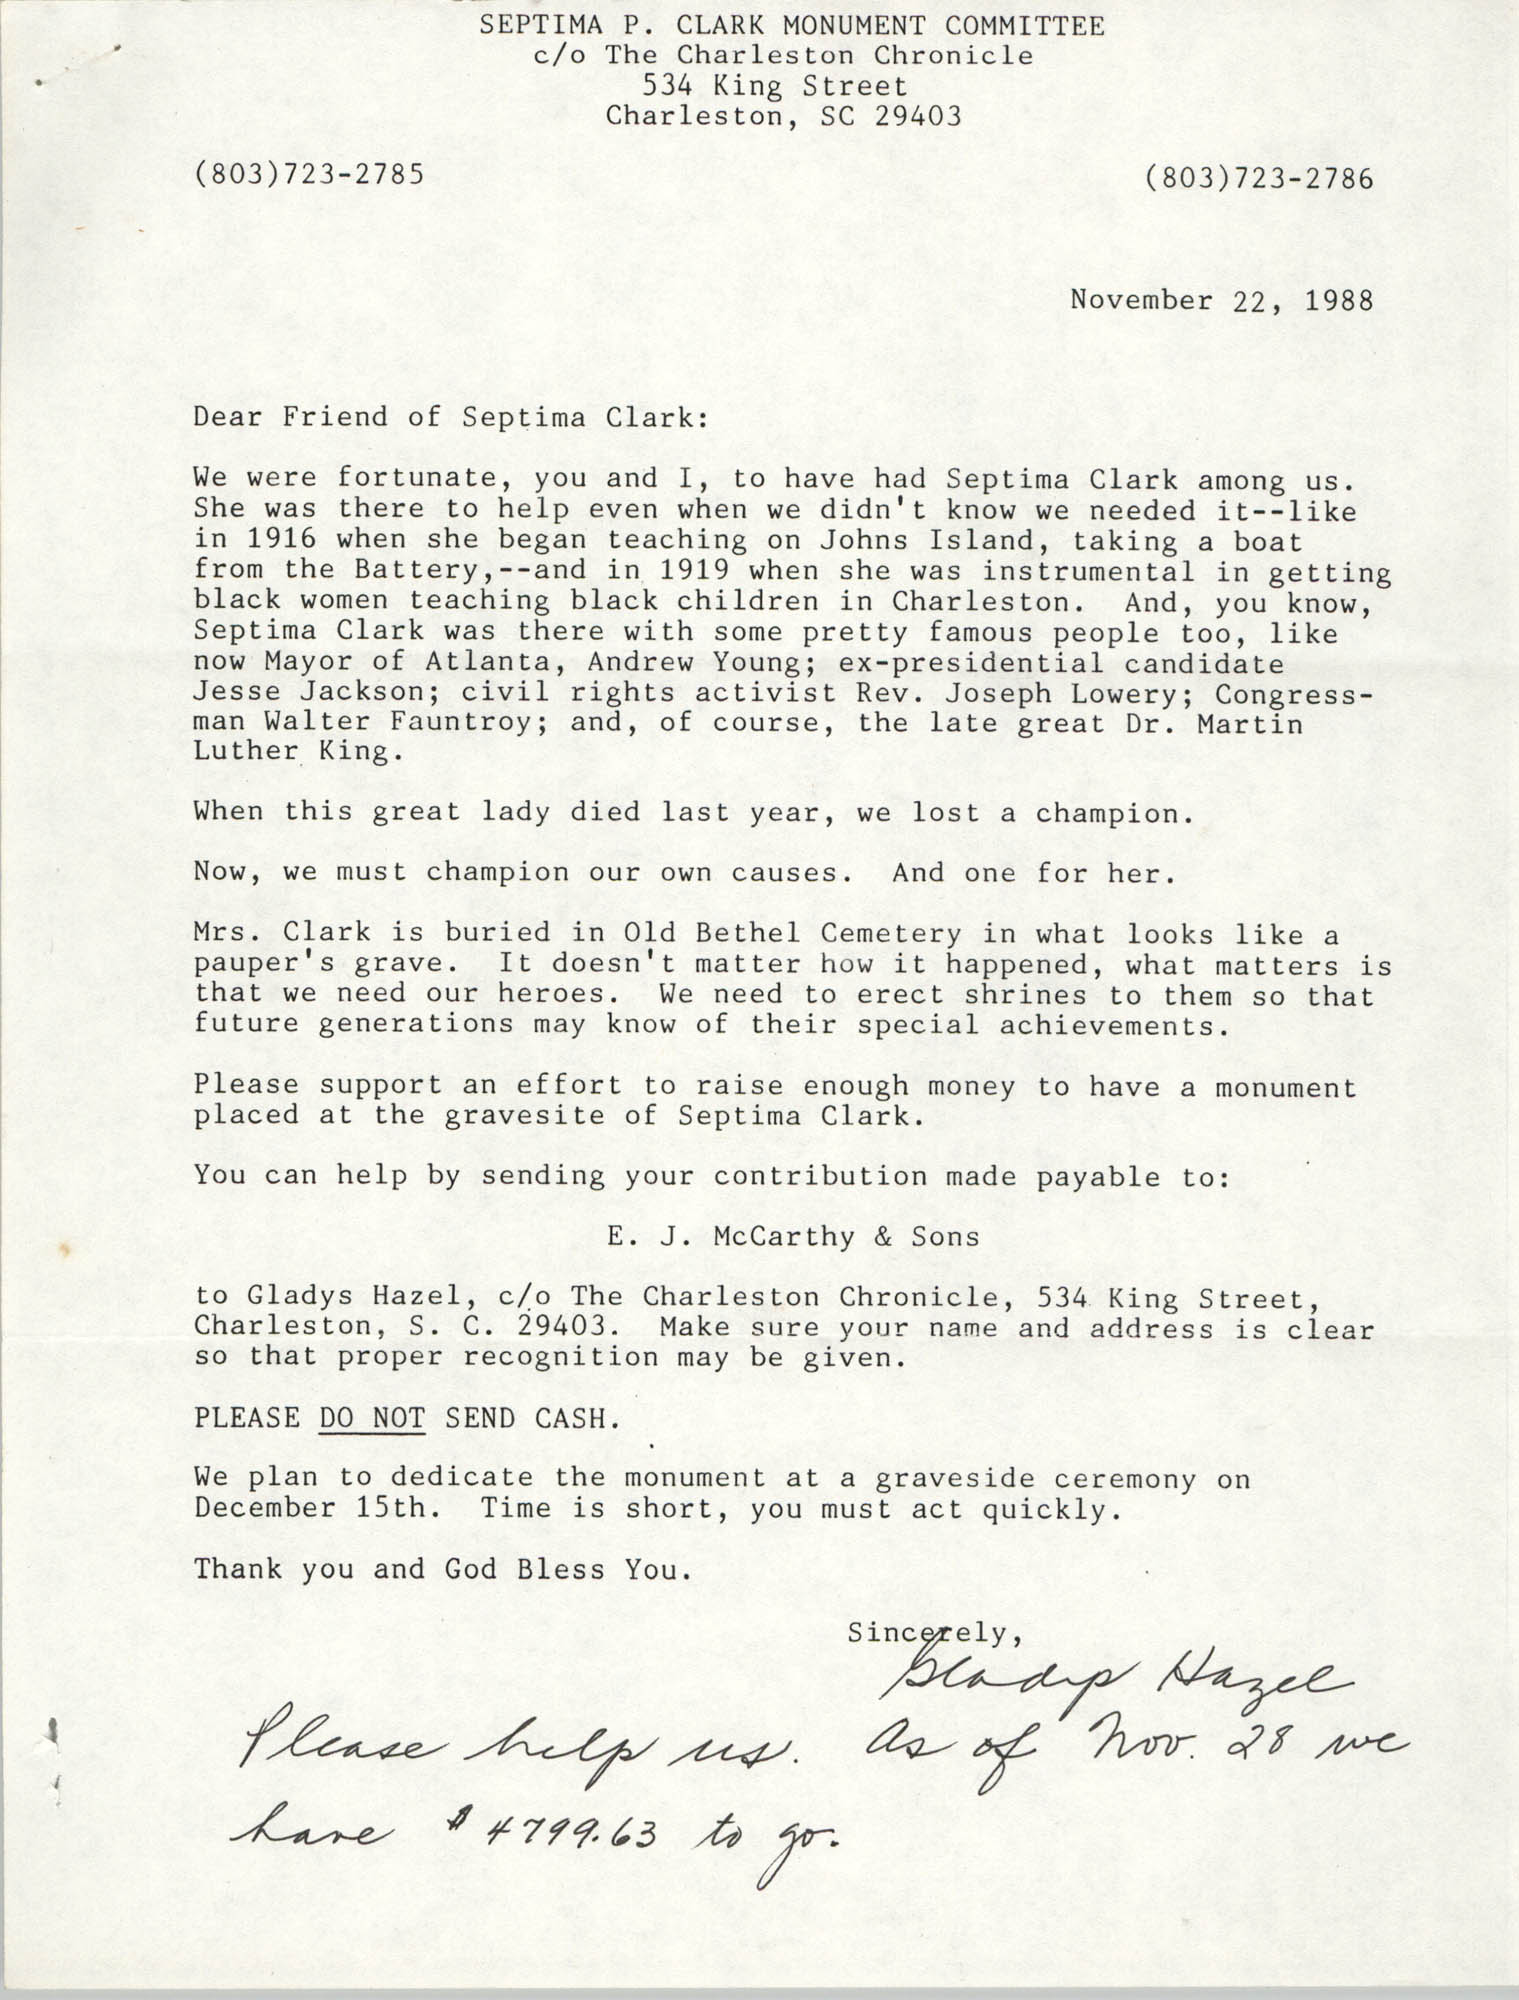 Letter from Gladys Hazel to Friends of Septima Clark, November 22, 1988